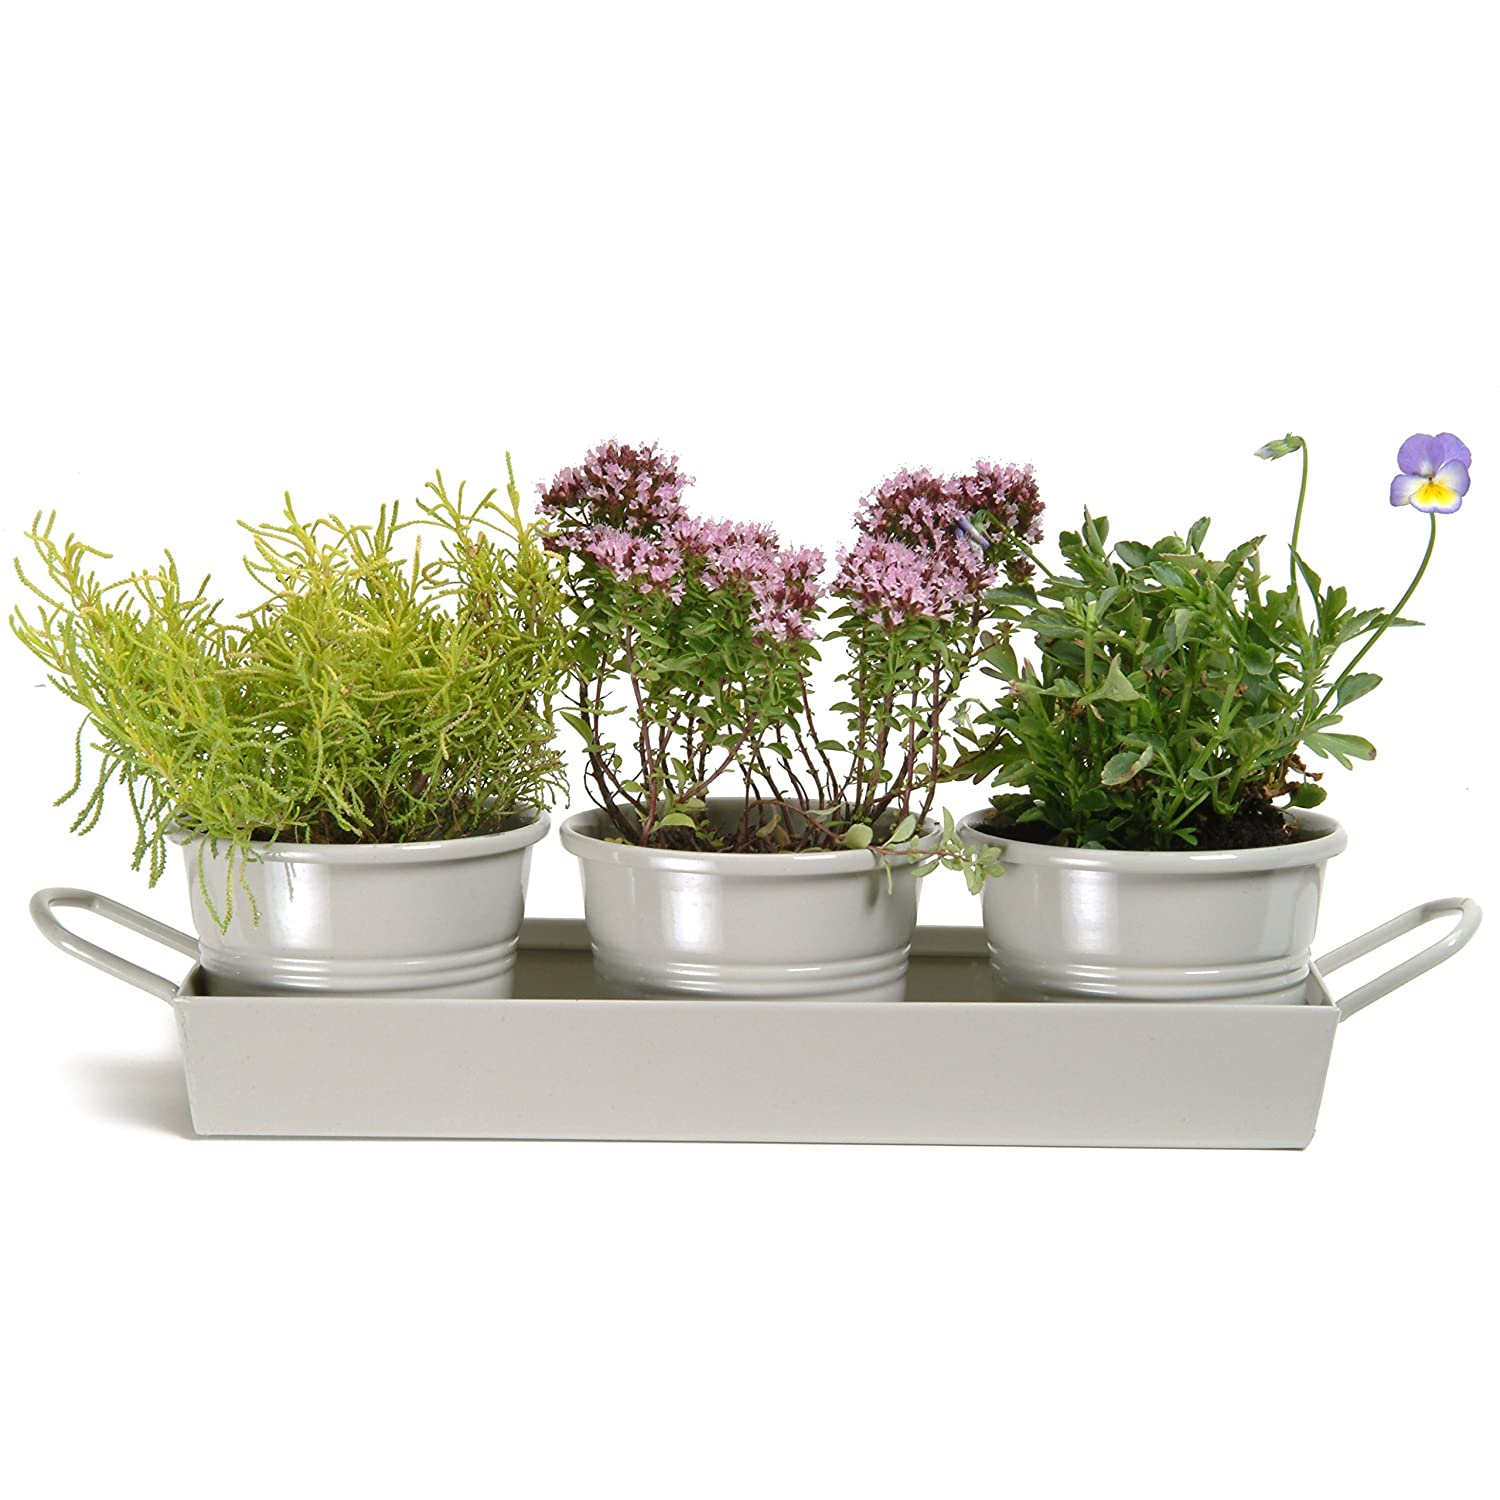 Kitchen Herbs: Kitchen Herb Pots Wooden Planter Window Sill Garden Plant